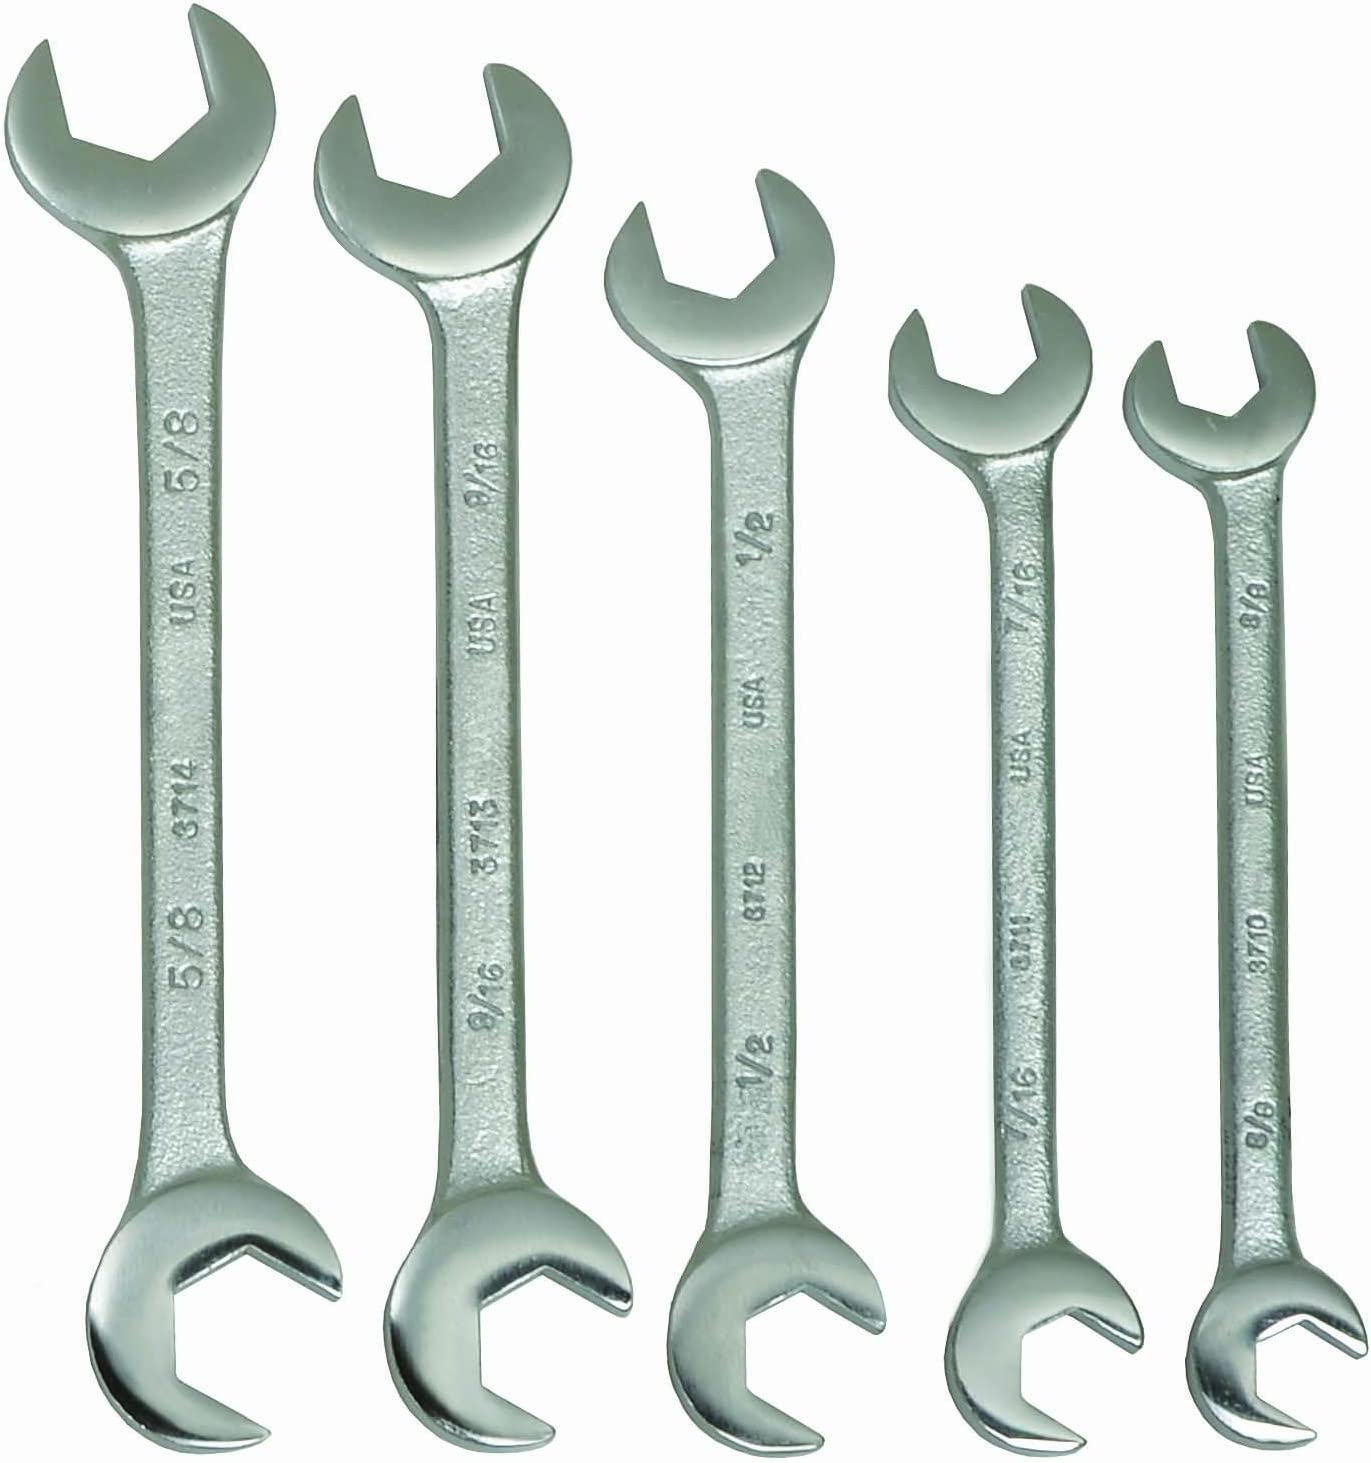 6pc Set Adjustable Pin Spanner Wrenches Williams USA #WS-476